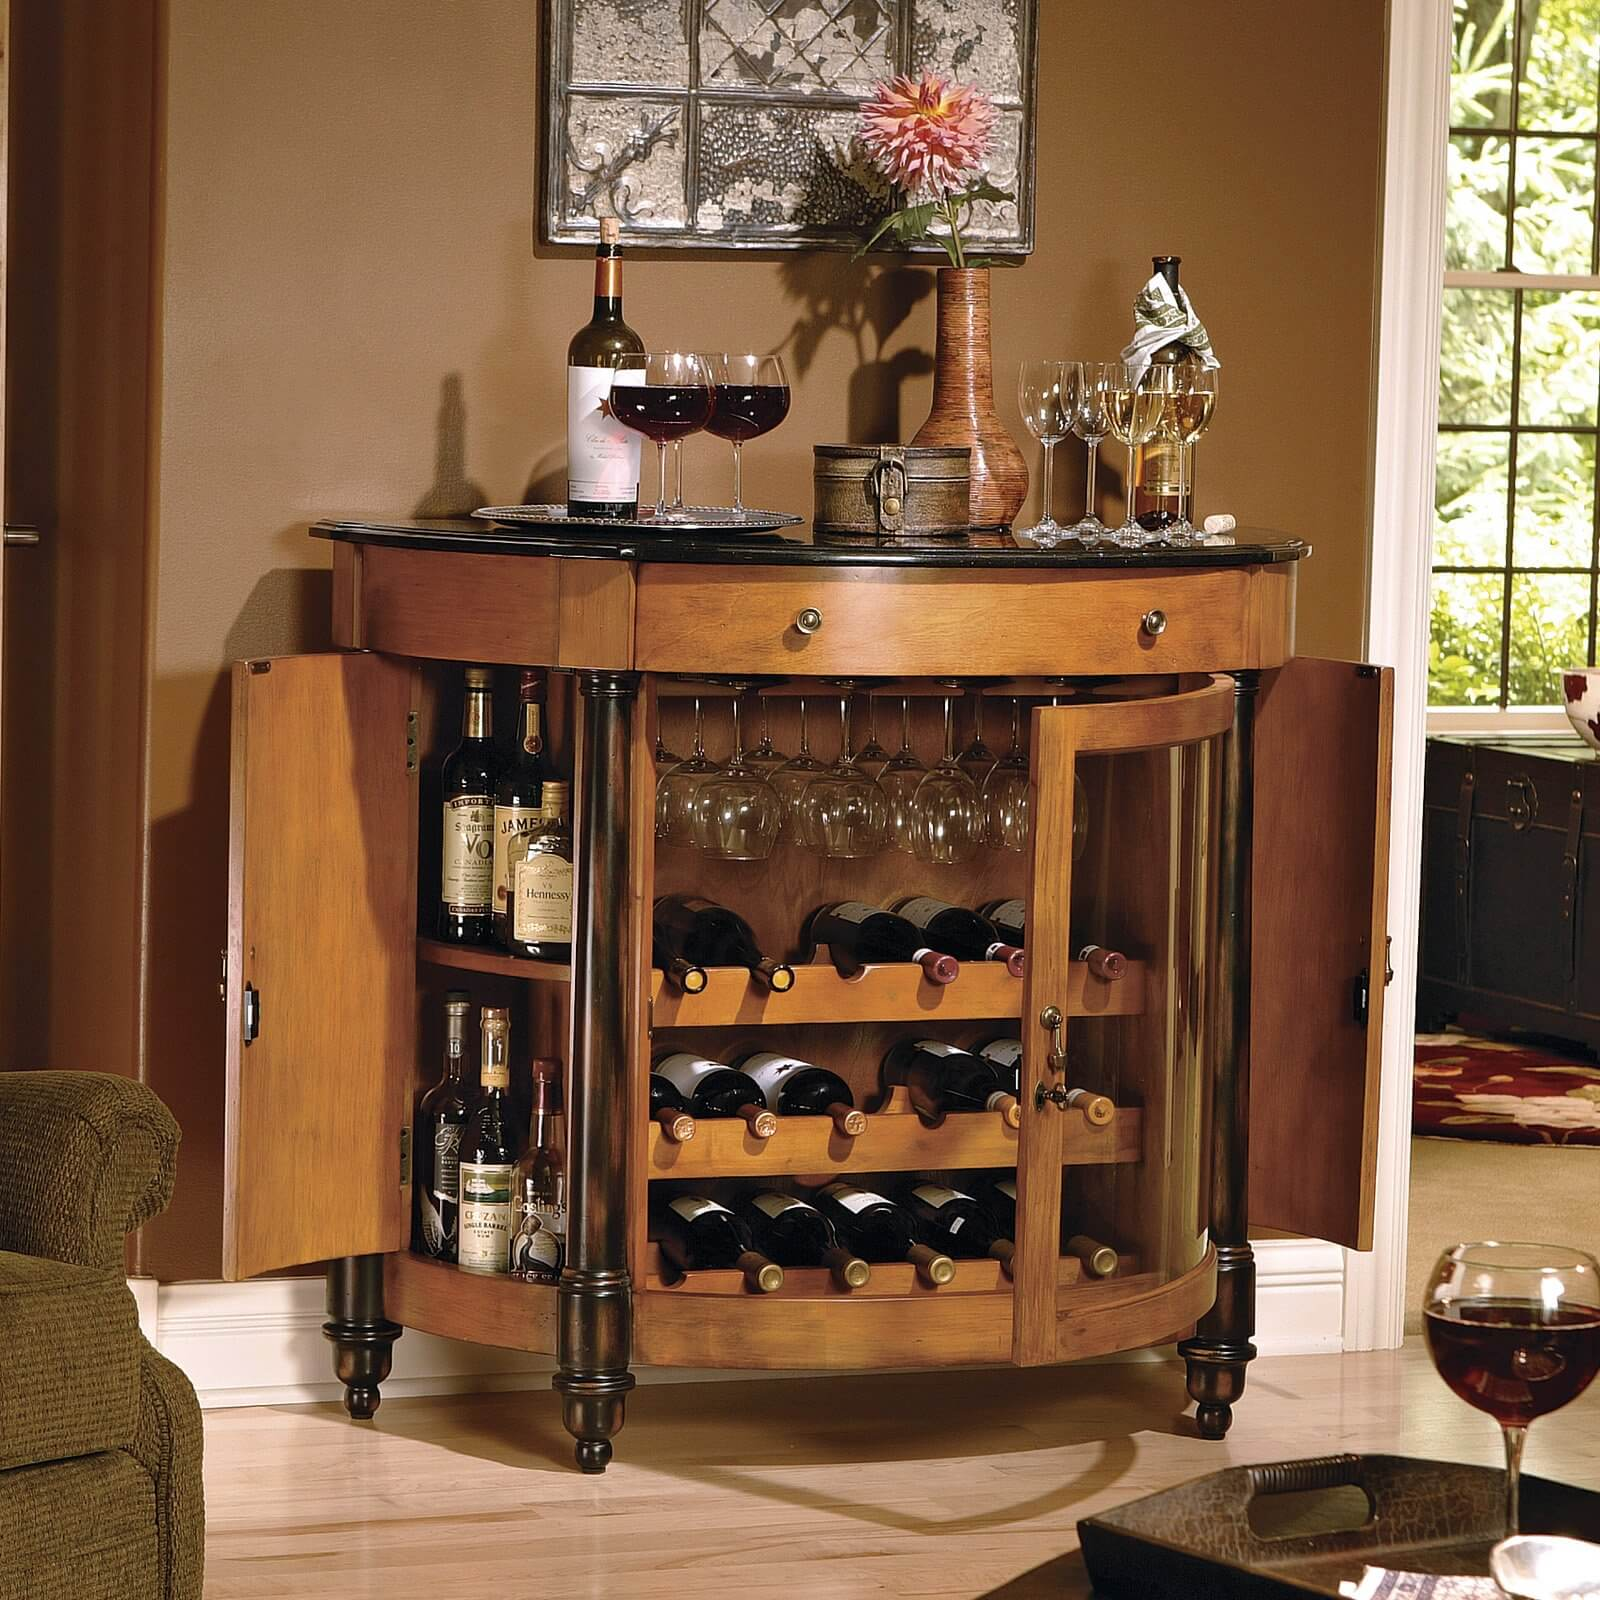 Small Wine Bar Cabinet. Hereu0027s A Home Bar For Wine Lovers With Itu0027s 18  Bottle Wine Rack.